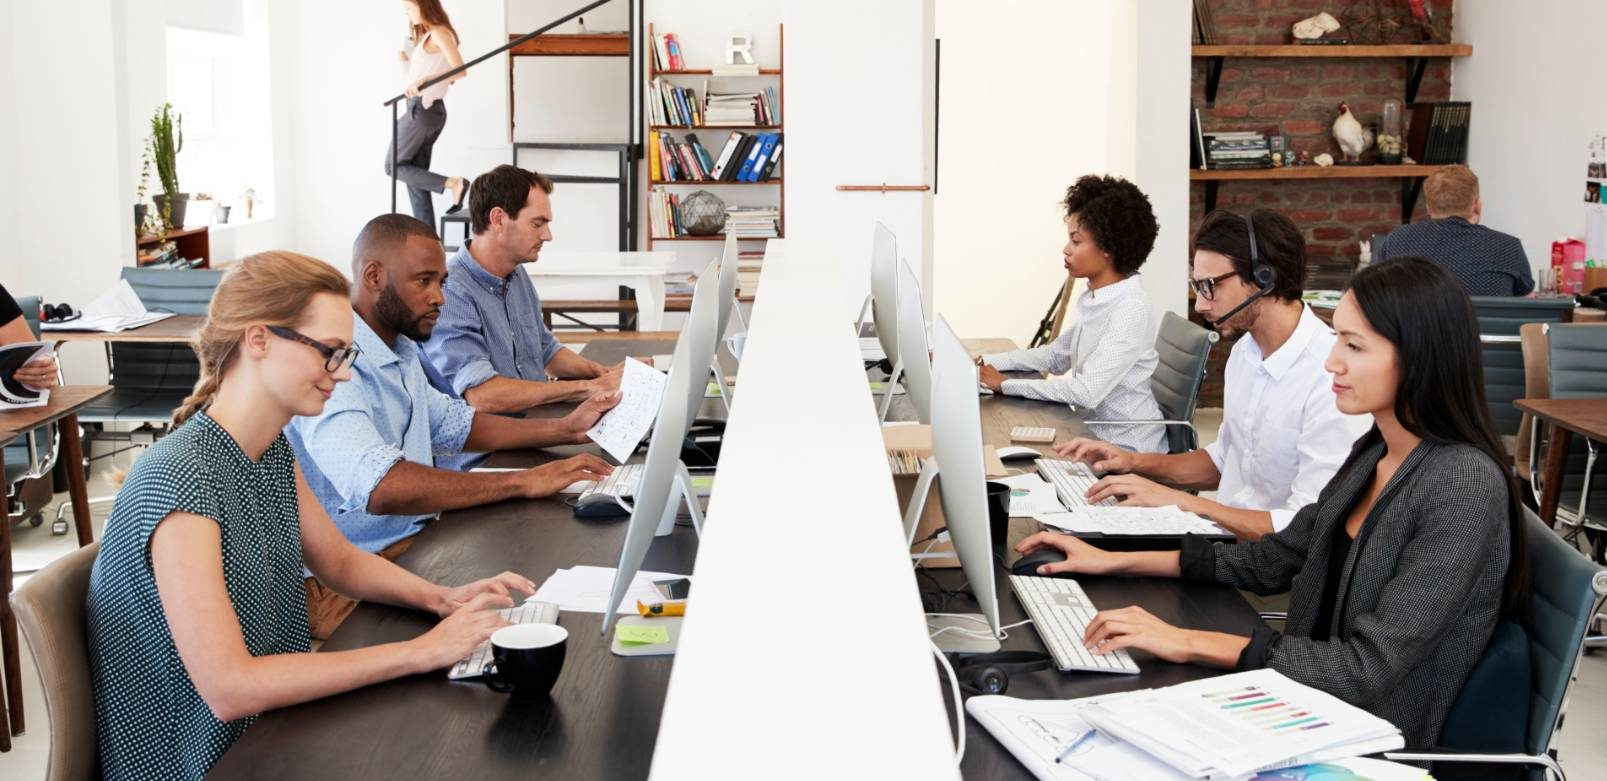 Employees working in an office at a long shared desk